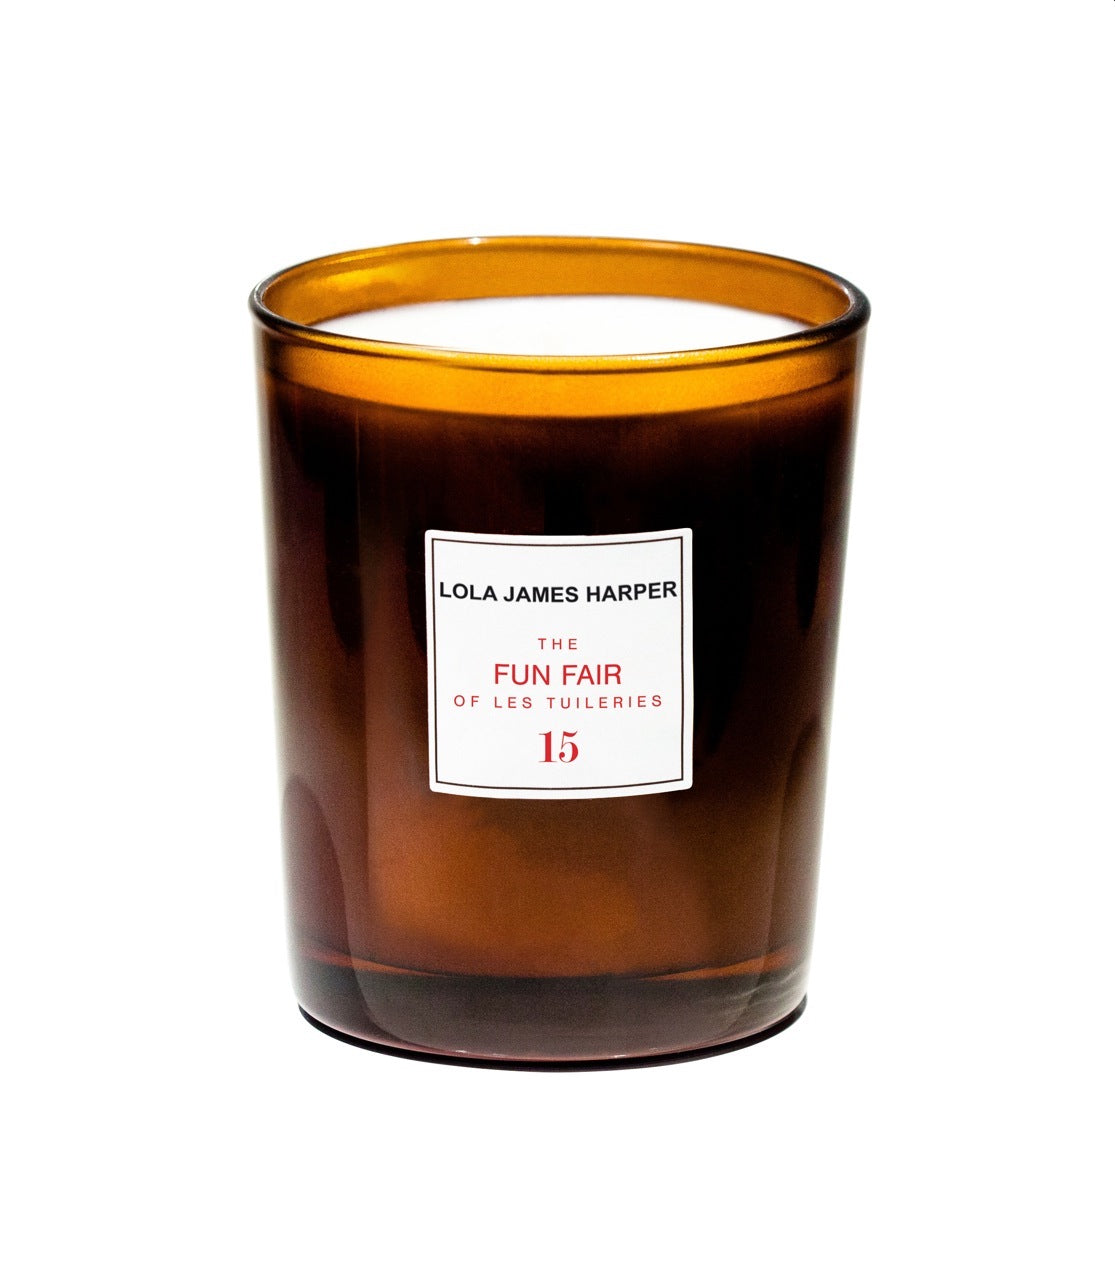 15 The Fun Fair of les Tuileries - 190G CANDLE